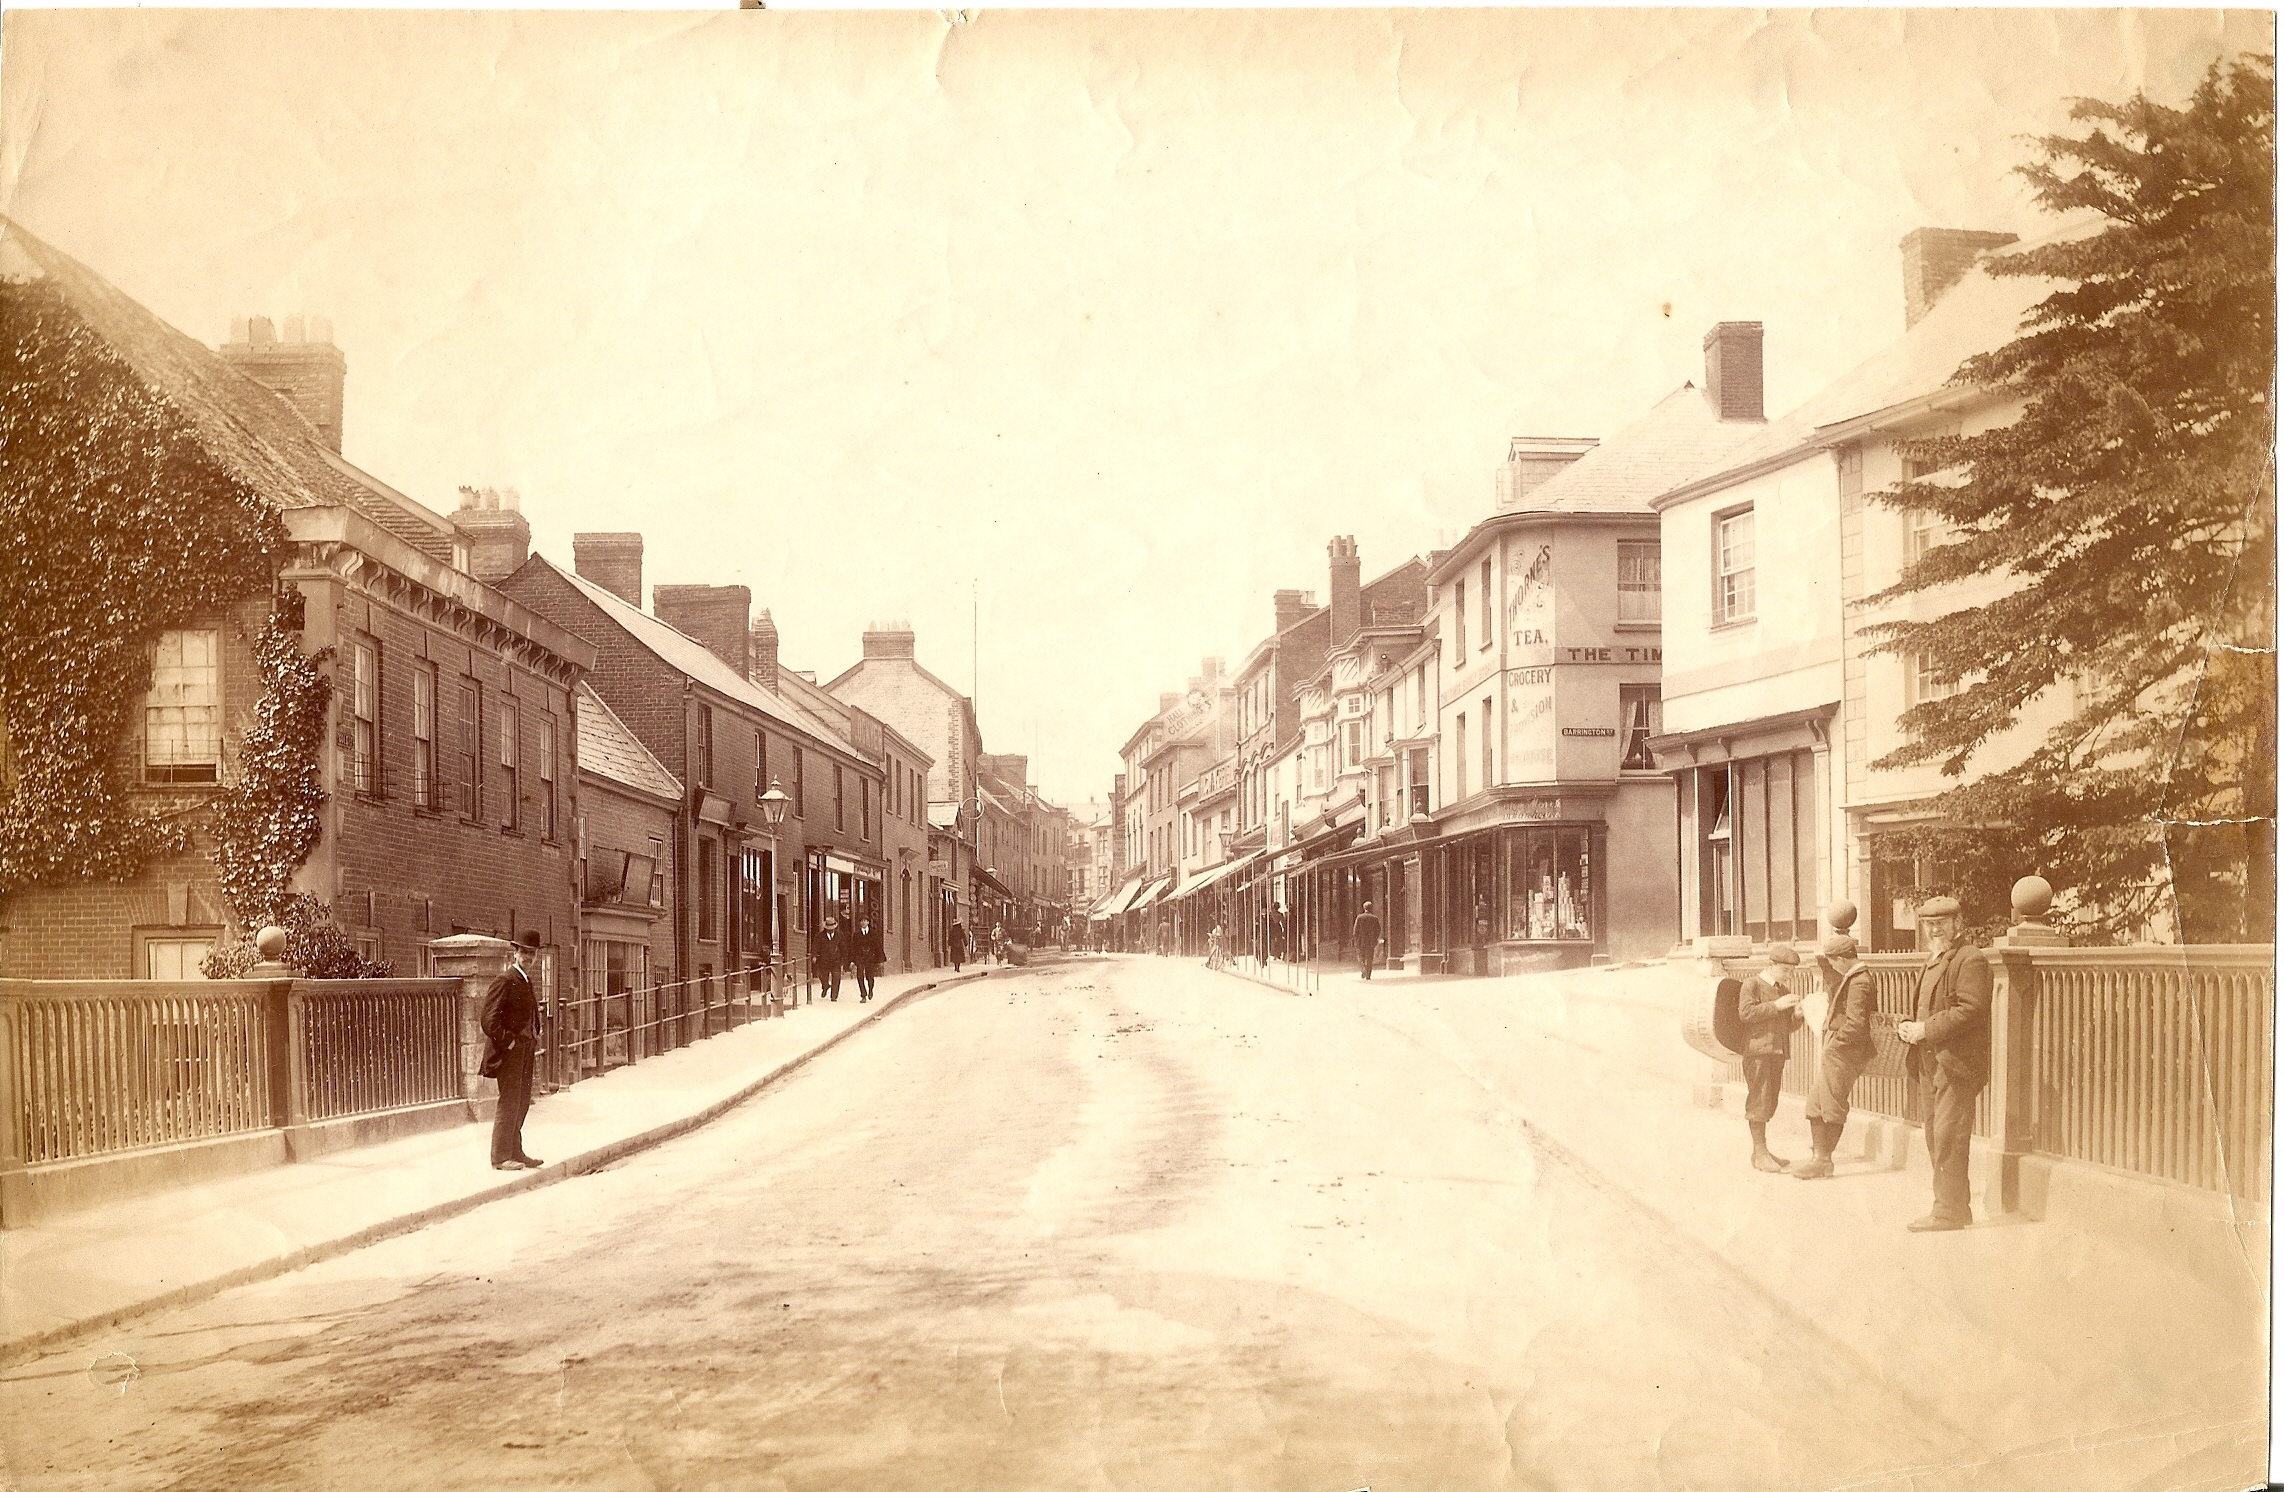 Tiverton. Image courtesy of Tiverton Museum of Mid-Devon Life